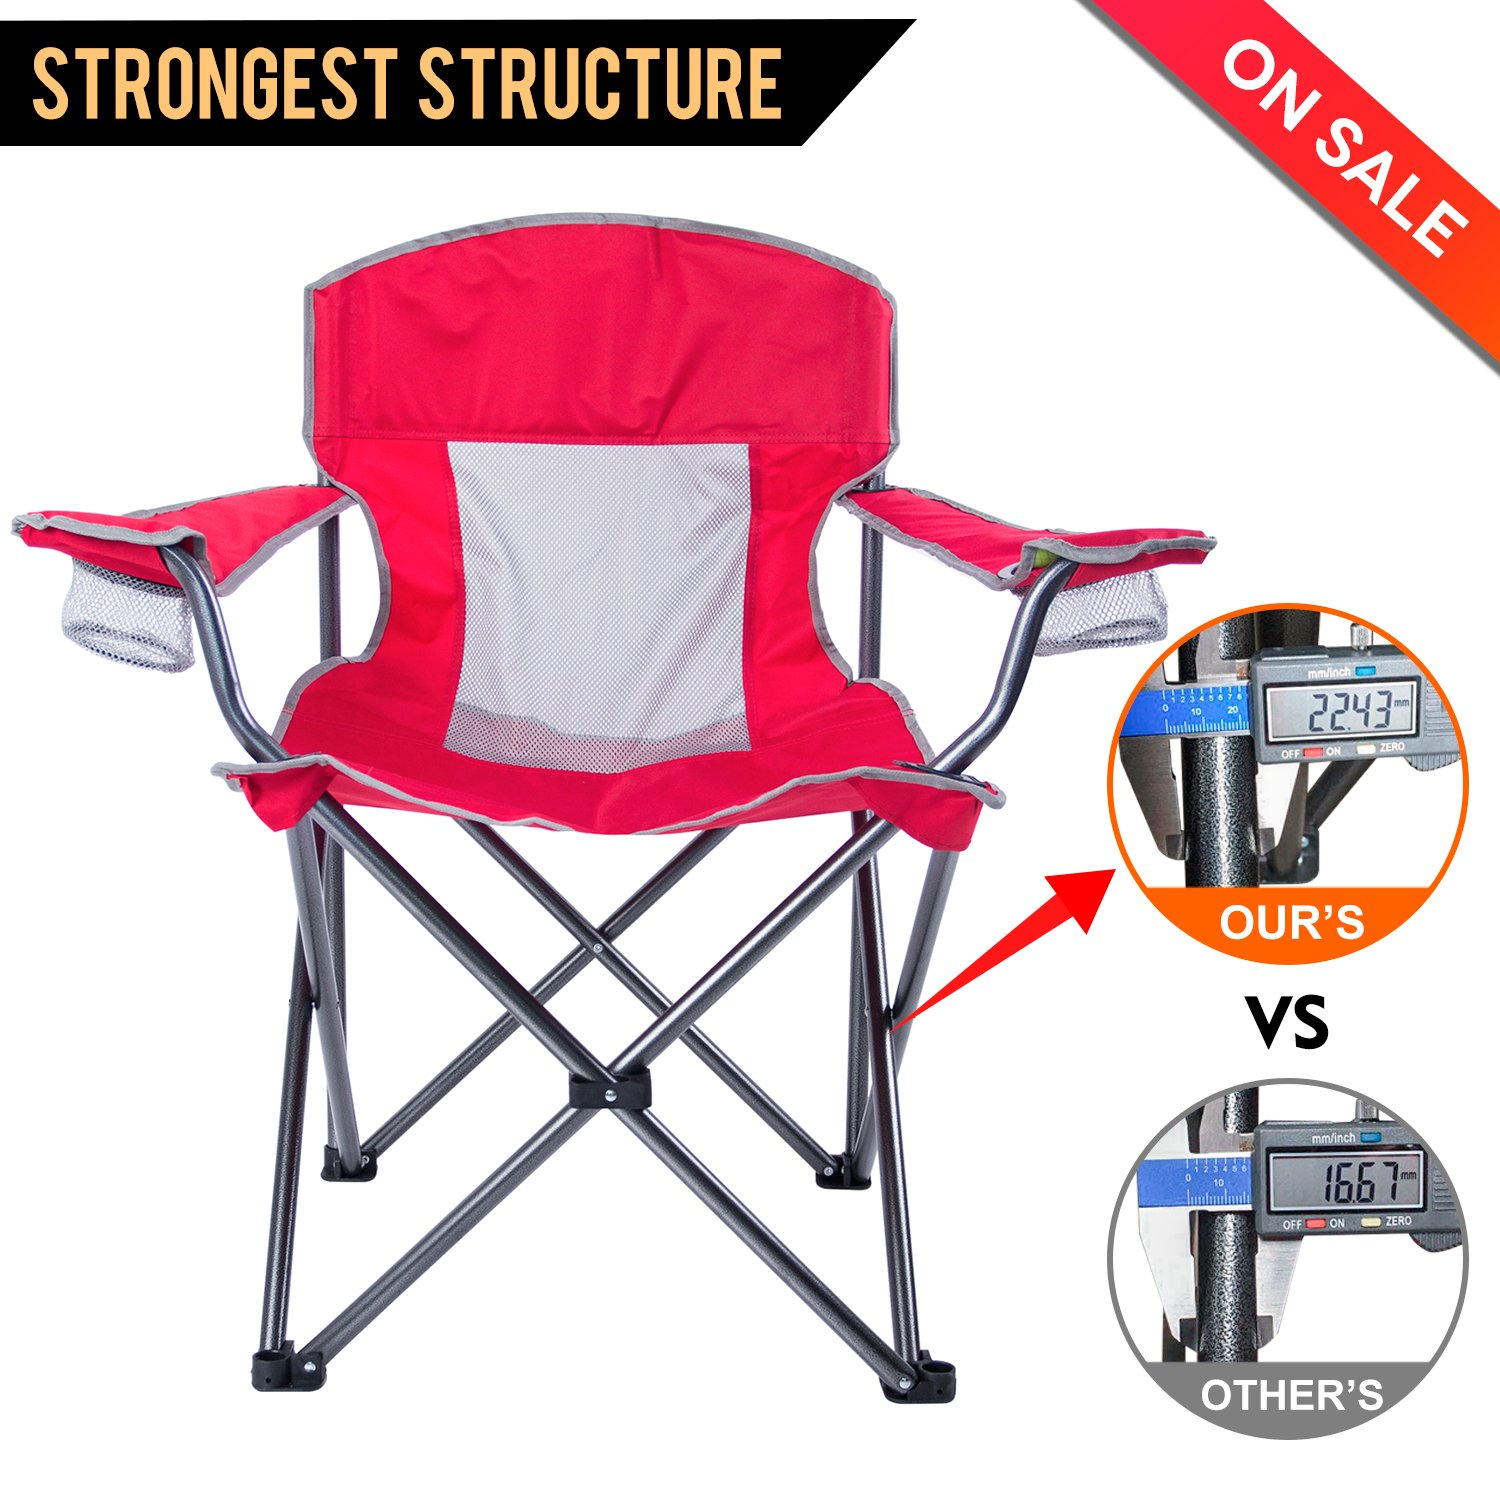 LCH折りたたみ椅子アウトドアキャンプQuad Chair Heavy Duty Deluxe with Two Cup Houlders andアームレストオーバーサイズハイバックサポート300lbsポータブルwith Carryバッグ B078K1CJB6 レッド レッド